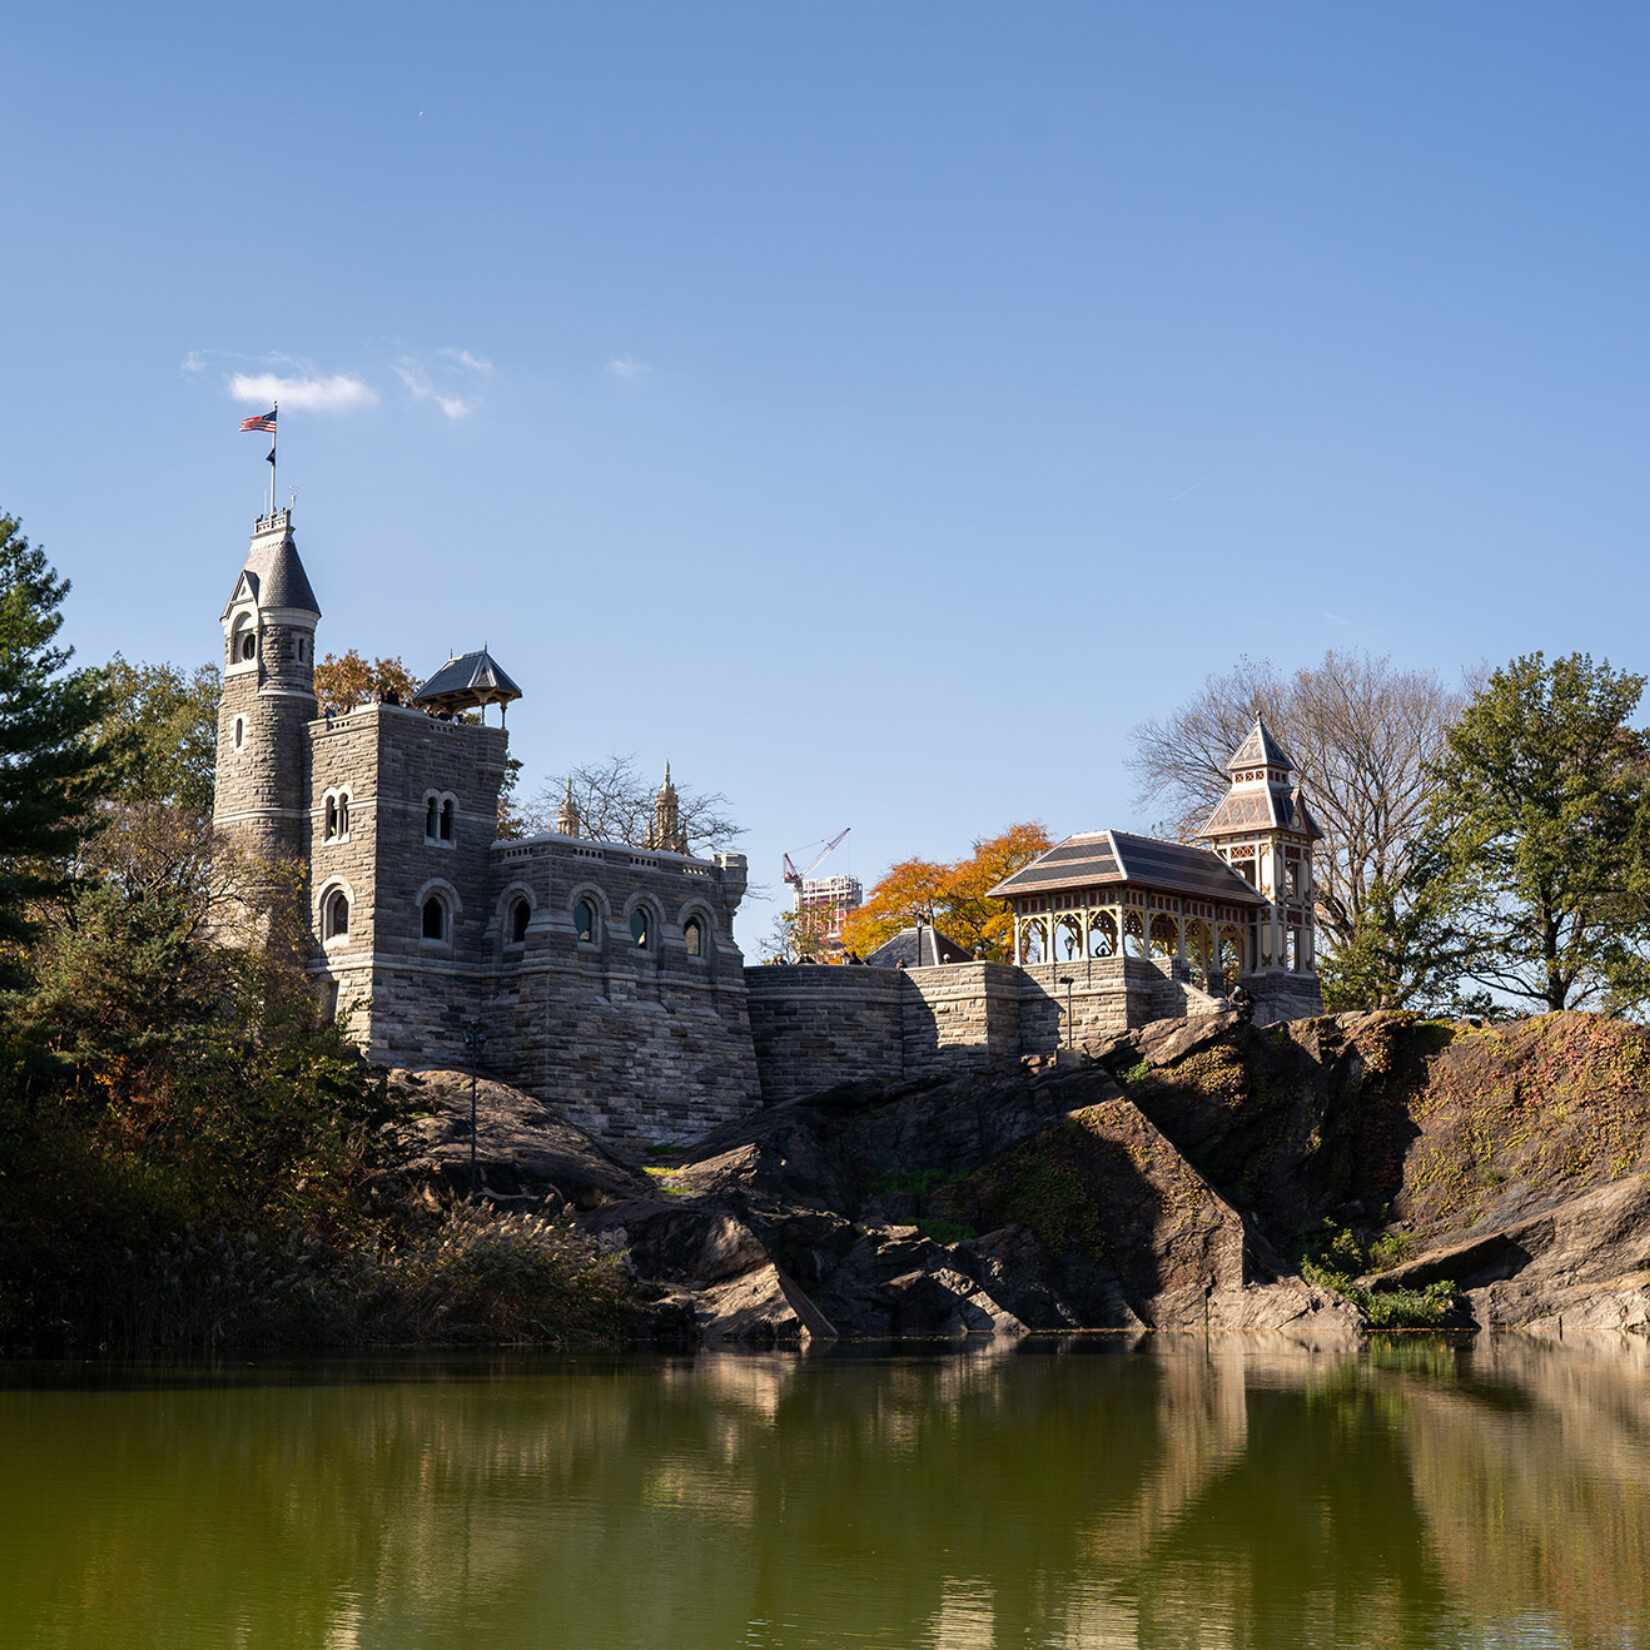 The Castle seen from the opposite shore of Turtle Pond